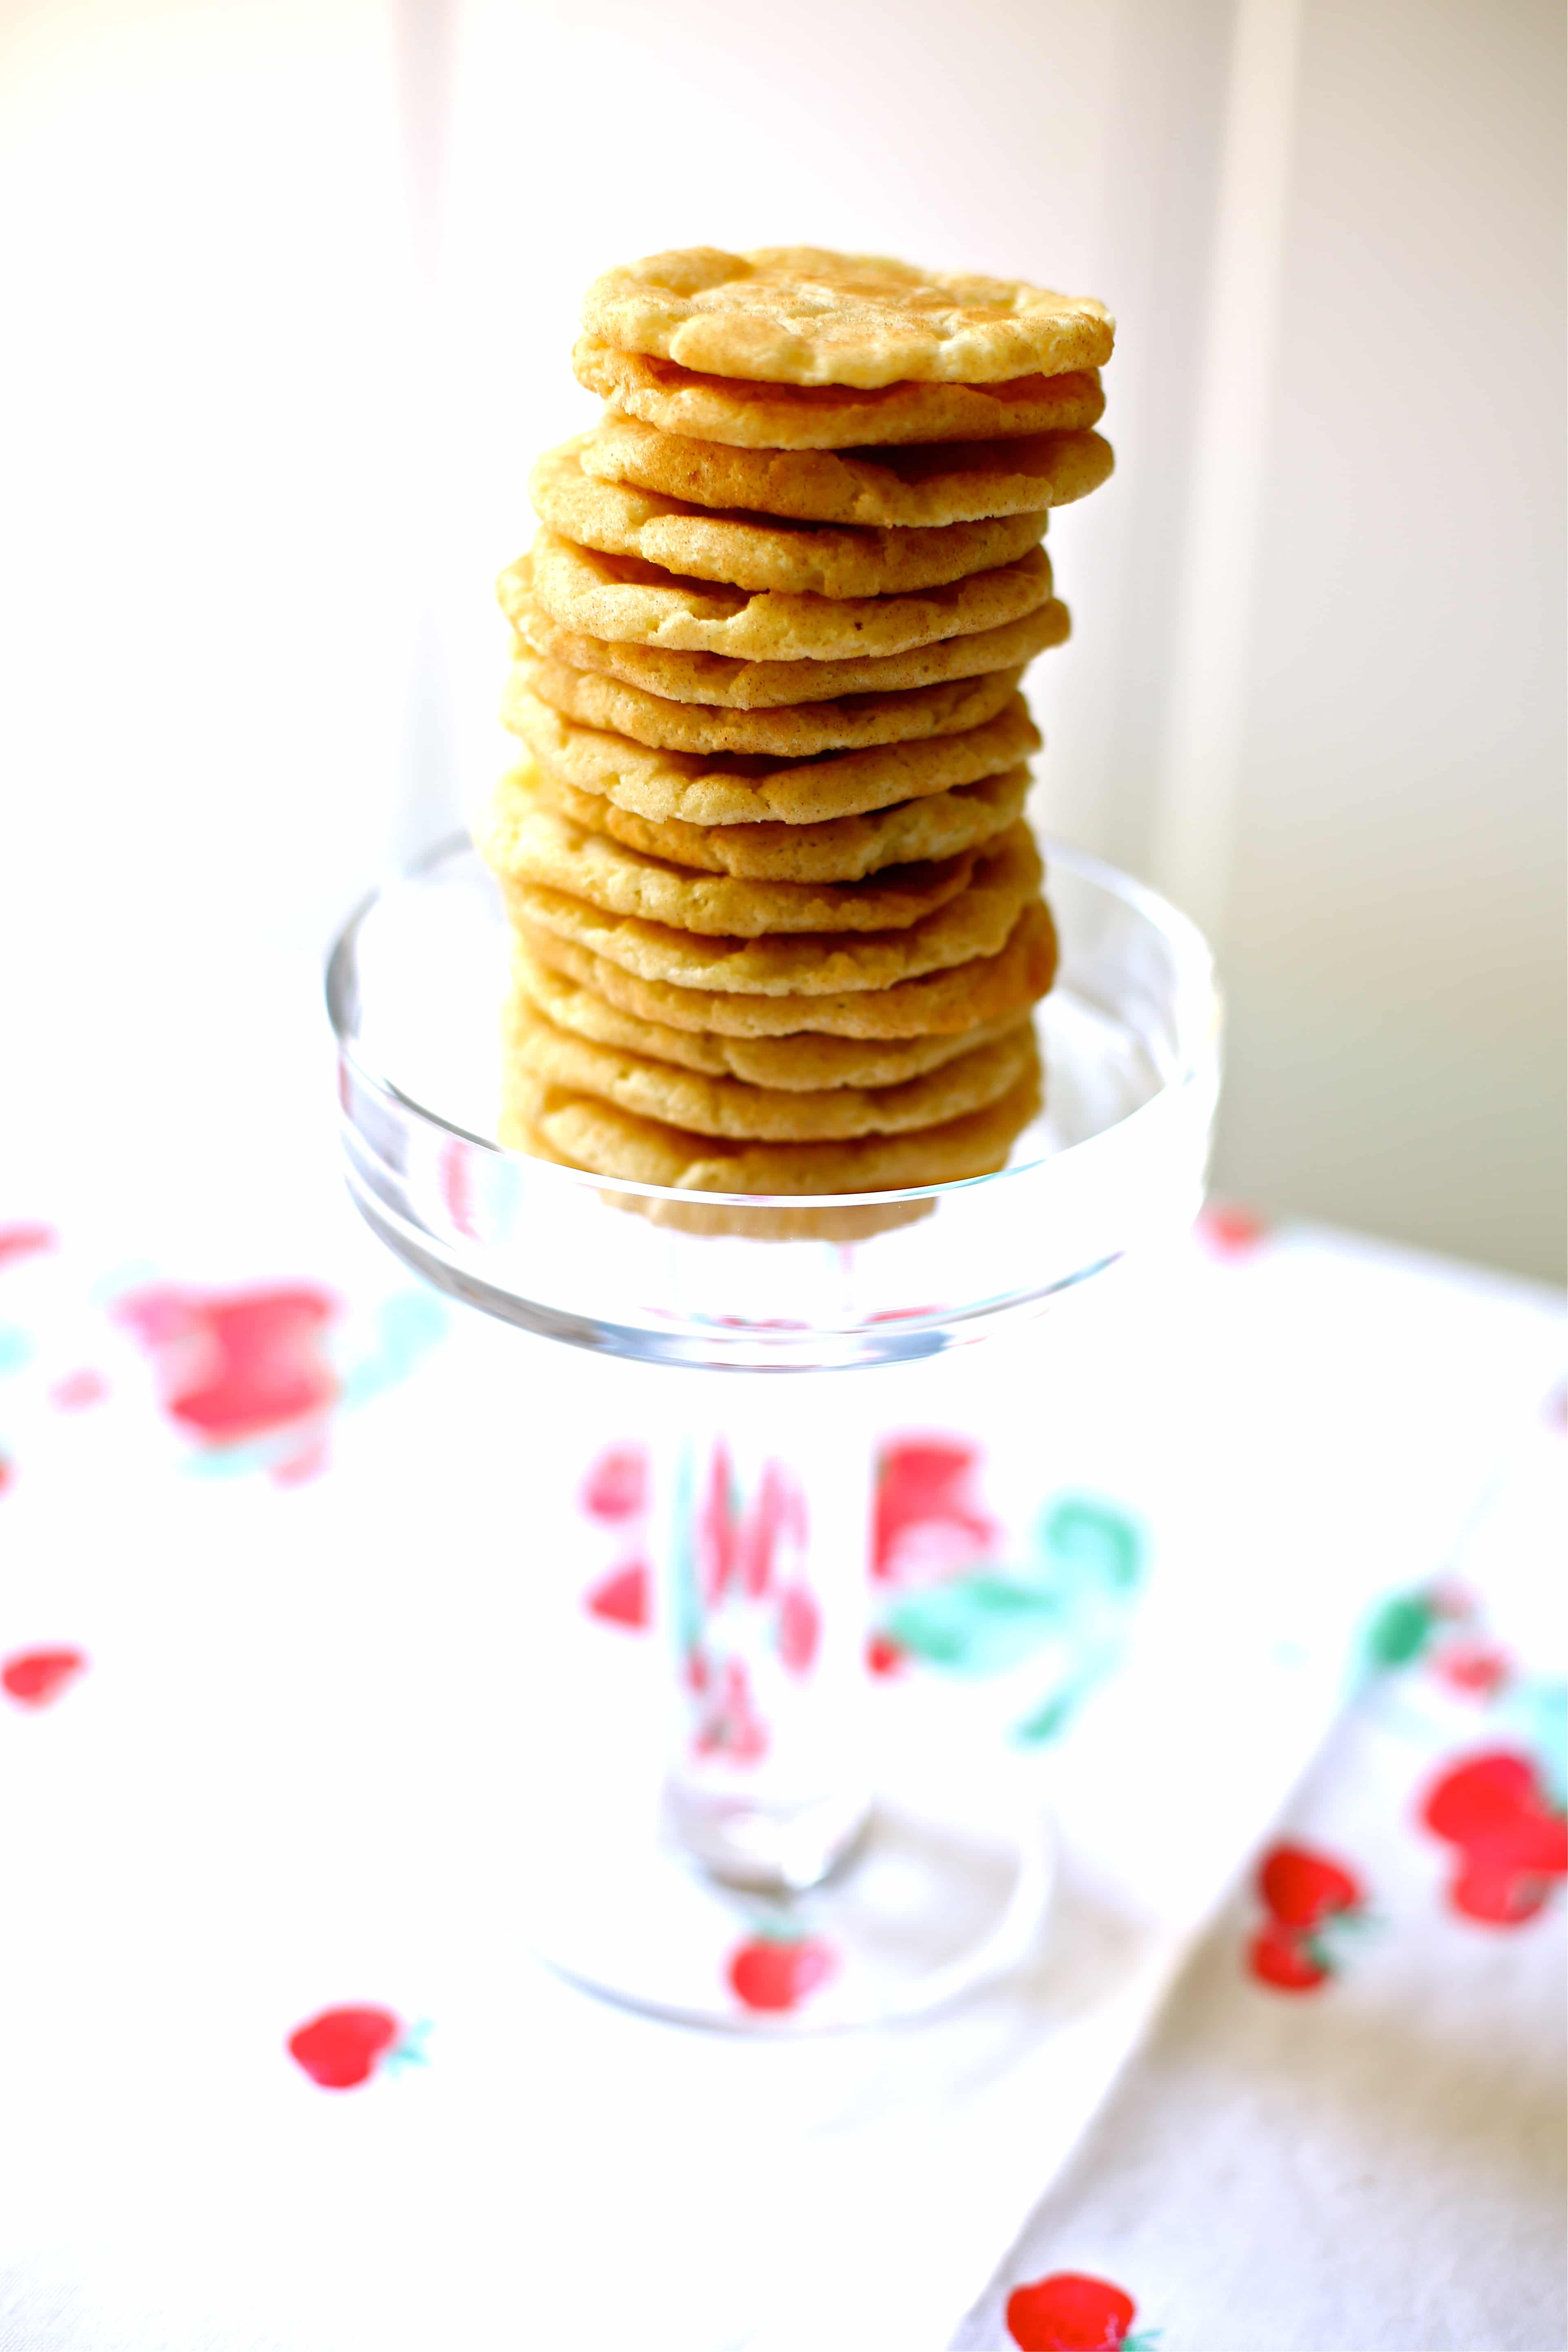 cookies stacked on a glass plate